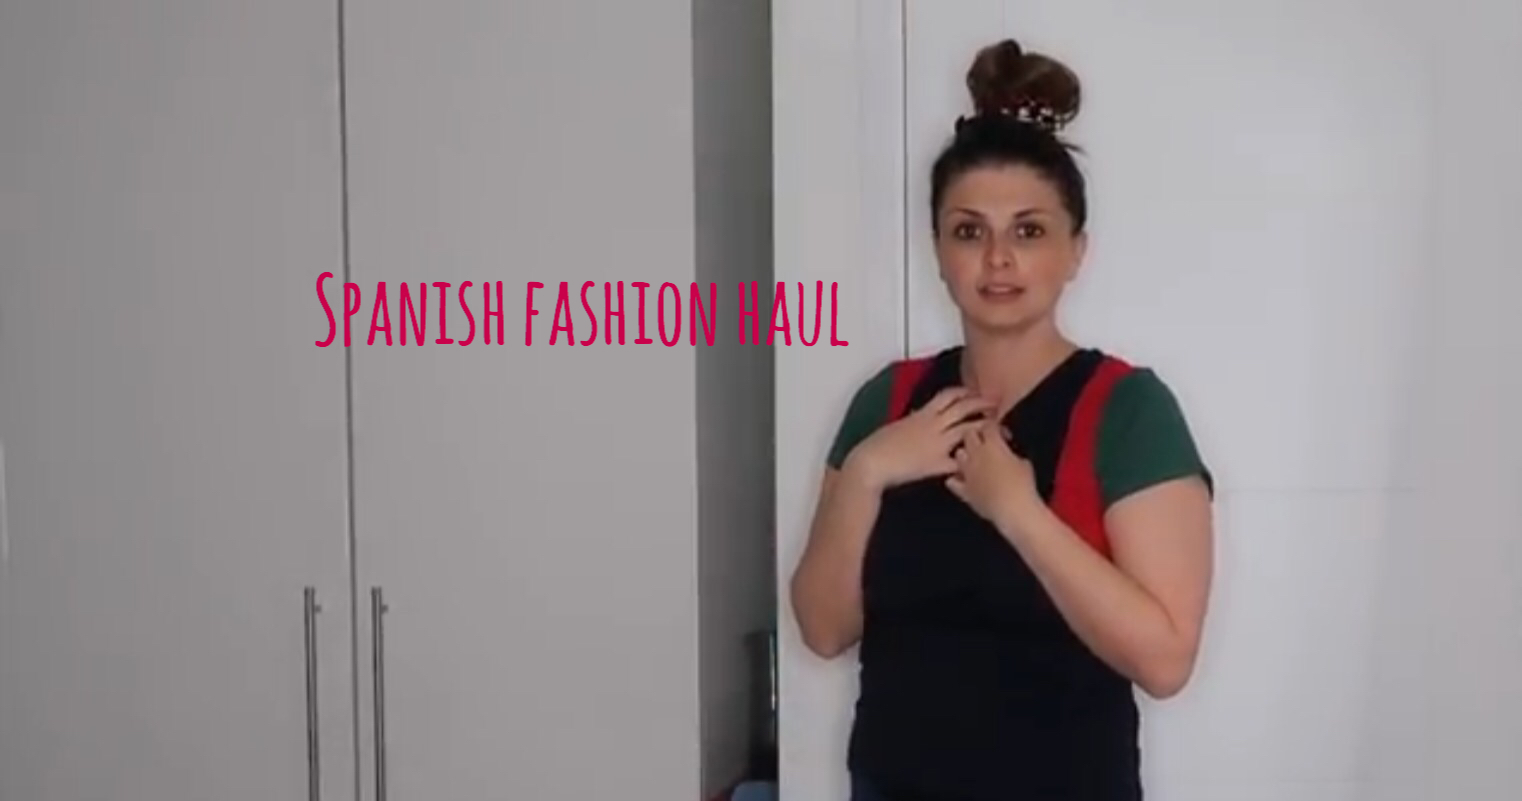 Spanish Fashion Haul graphic